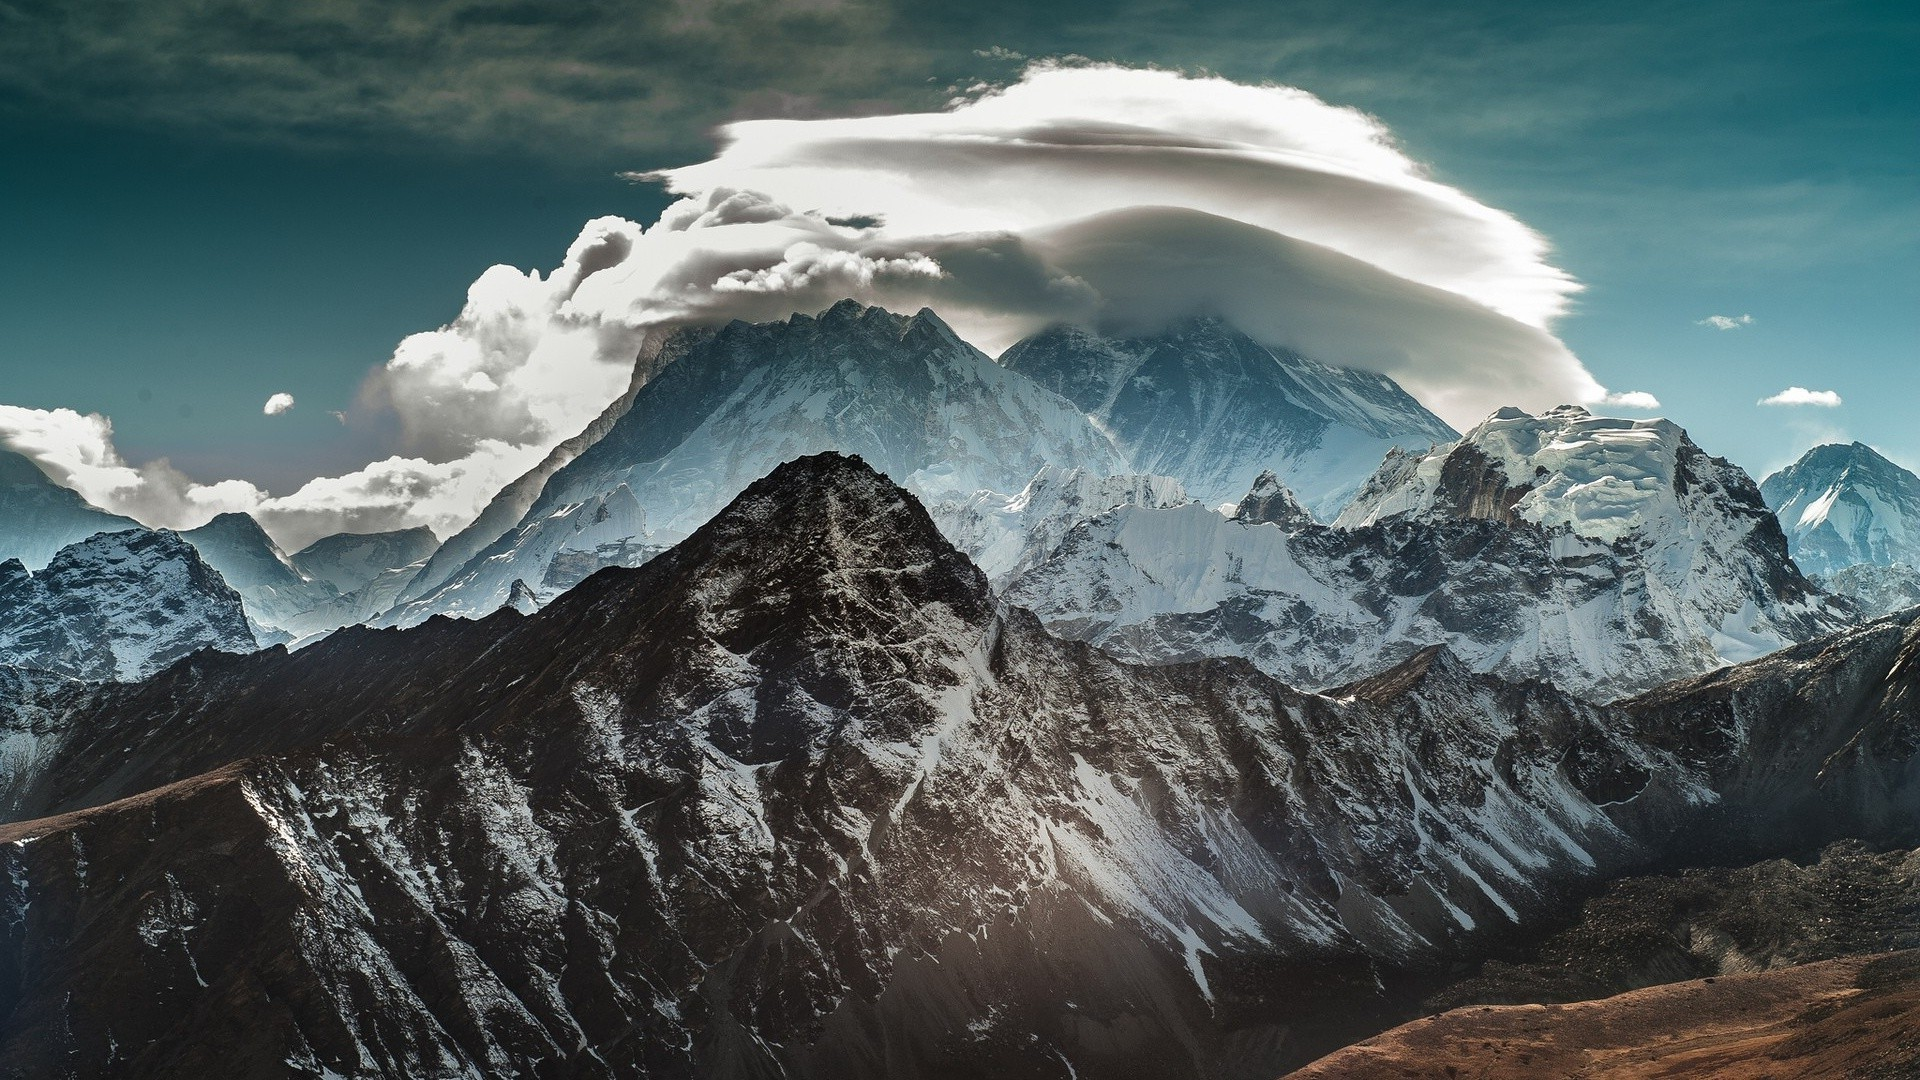 Nepal Wallpaper Hd 70 Images